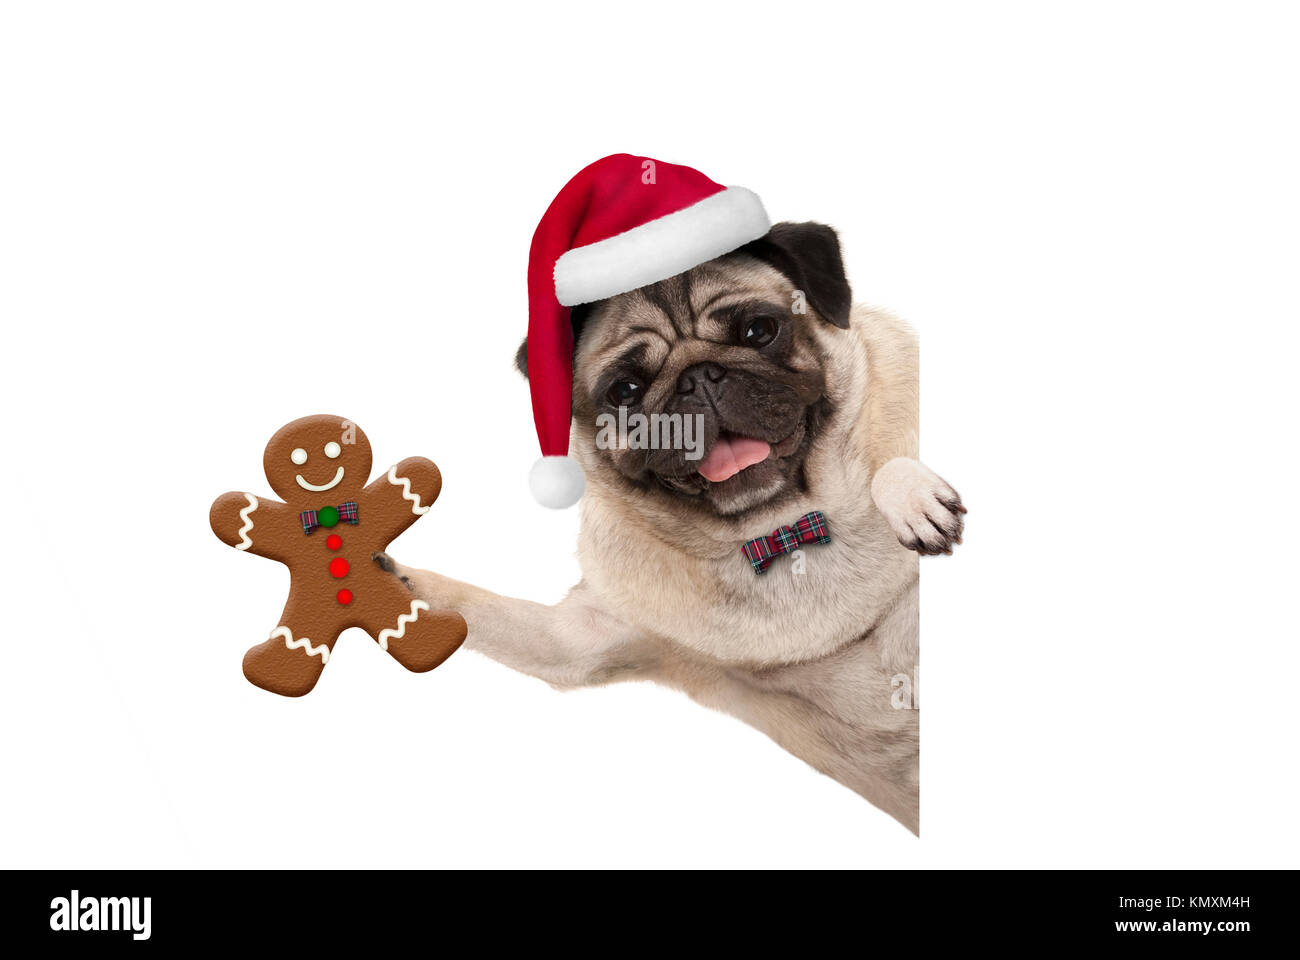 smiling Christmas pug dog holding up gingerbread man and wearing Santa hat, with paw on white banner, isolated - Stock Image